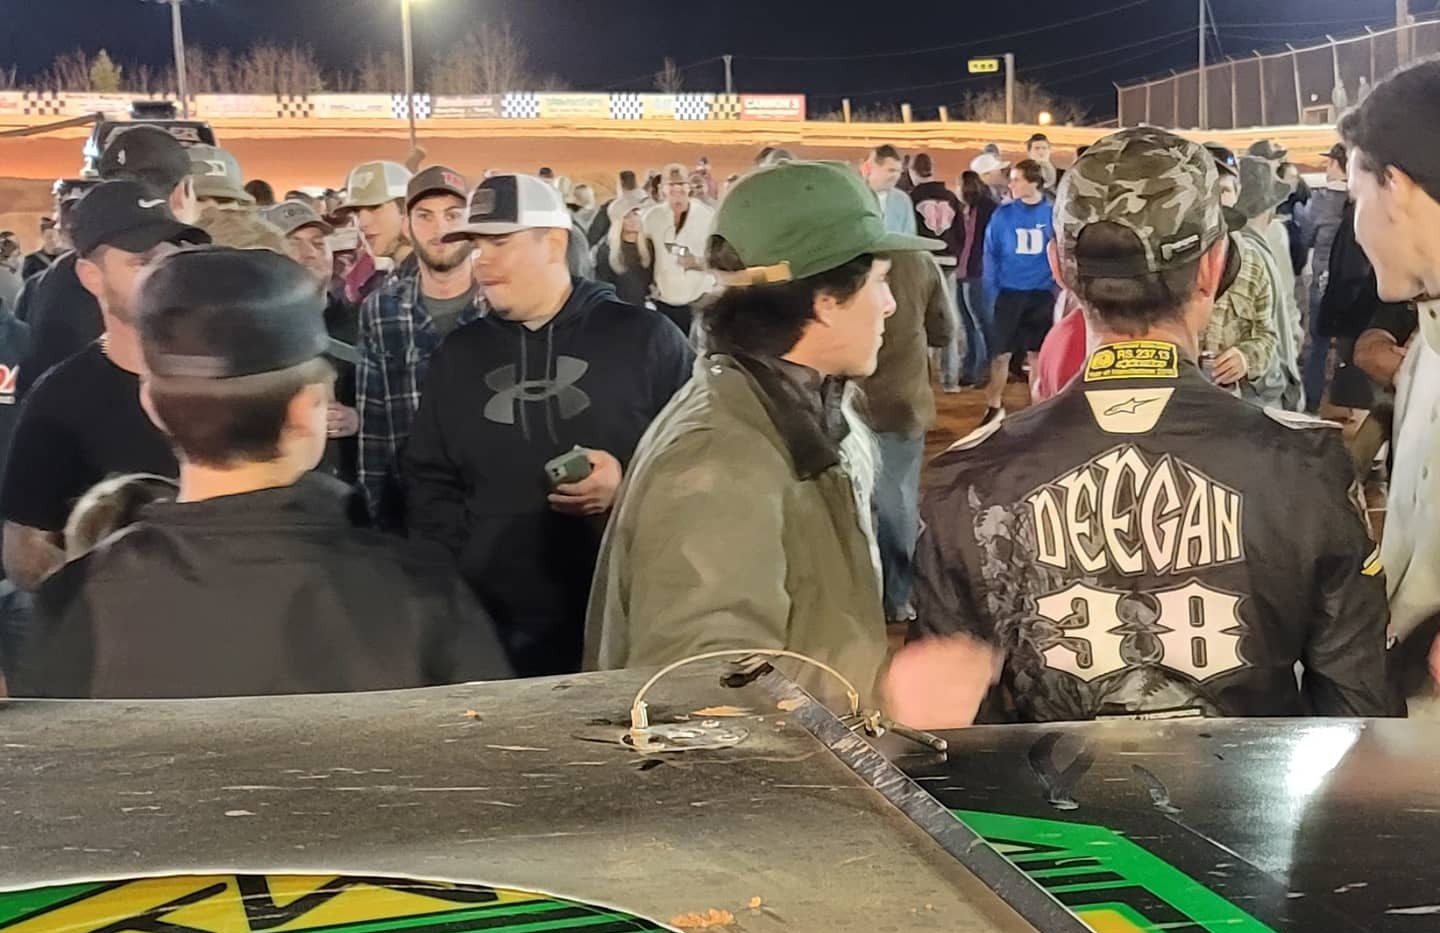 Deegan chatting with fans